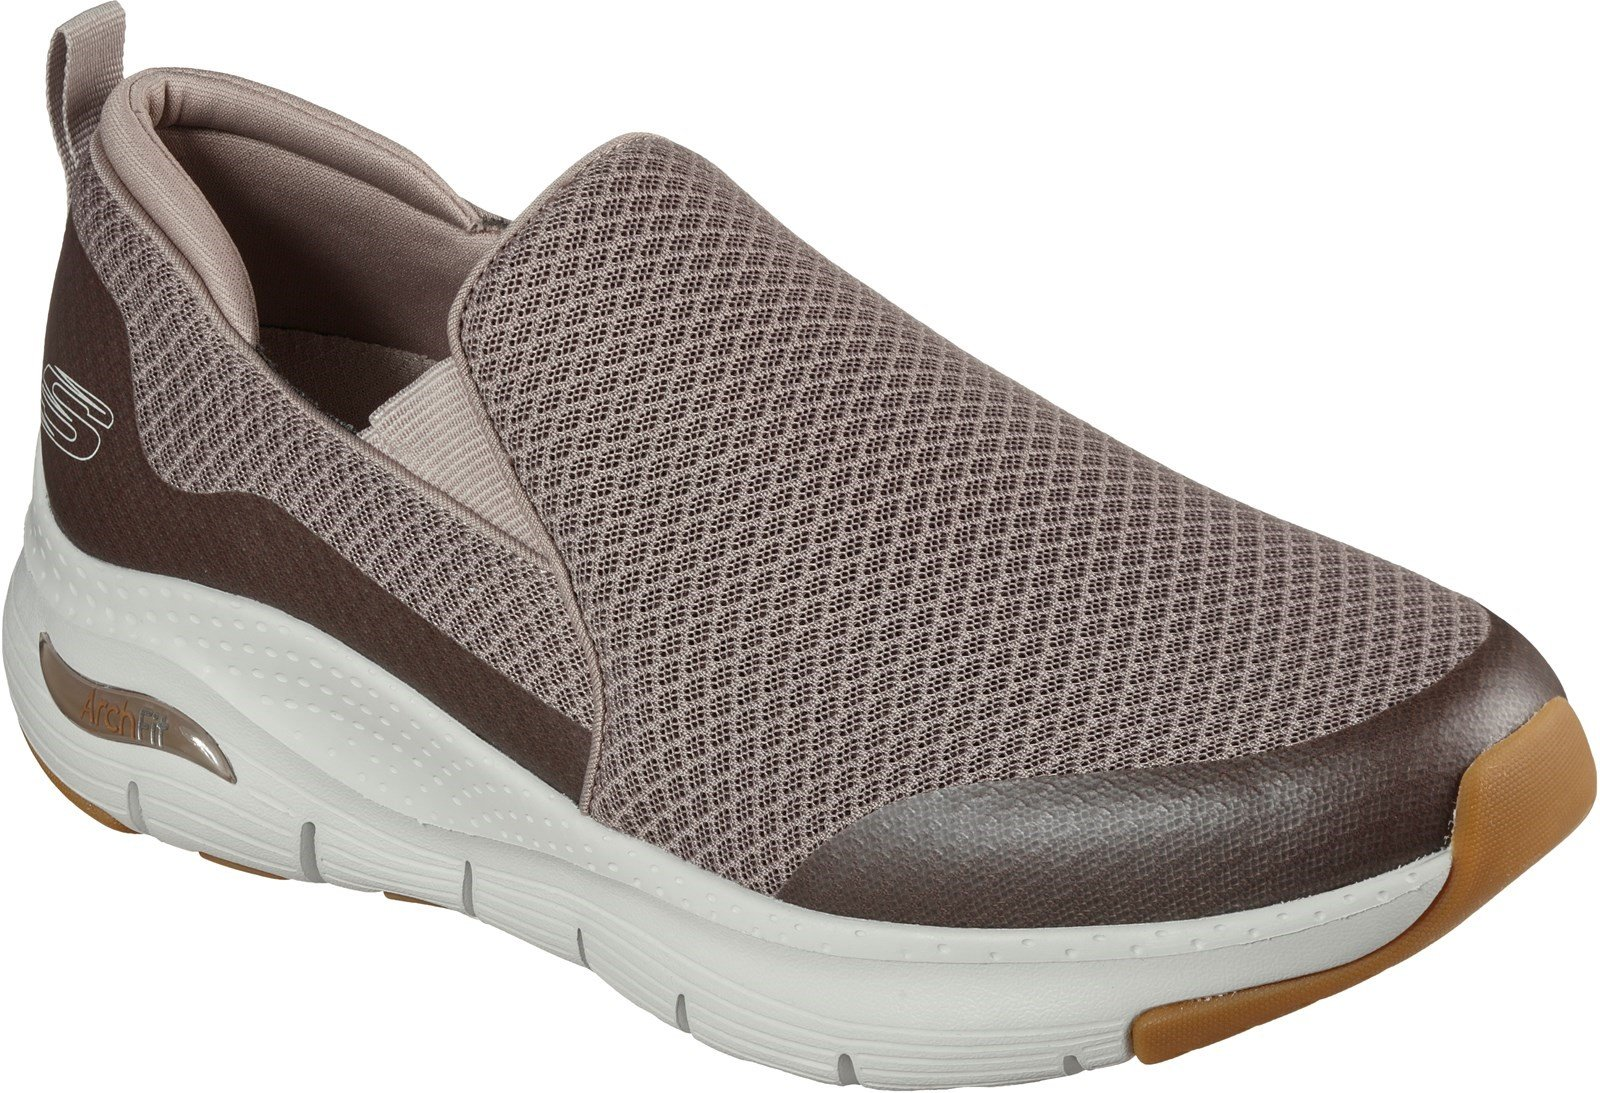 Skechers Men's Arch Fit Banlin Slip On Sports Trainer Various Colours 30358 - Taupe 6